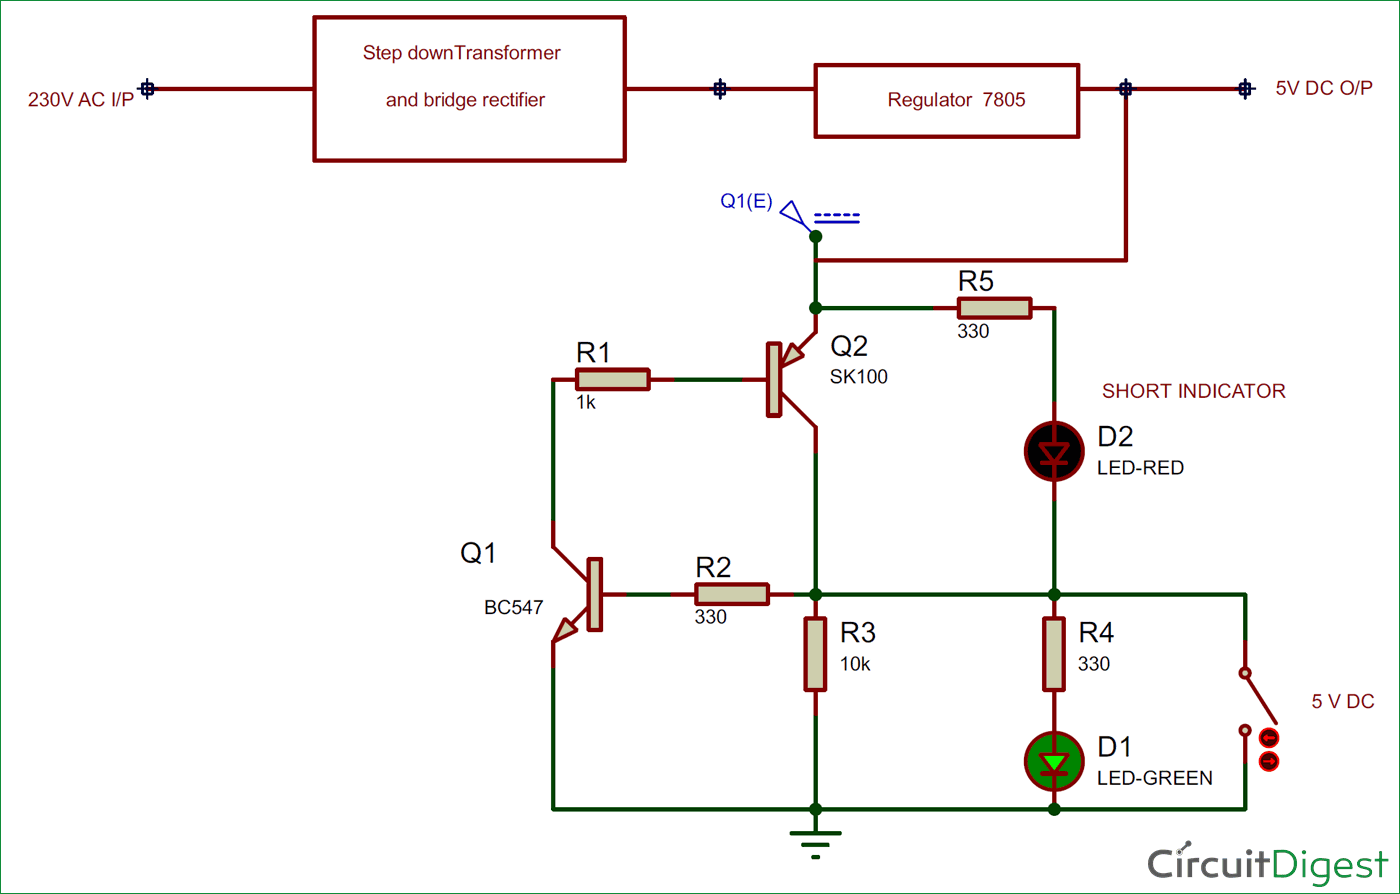 short circuit protection circuit diagram rh circuitdigest com